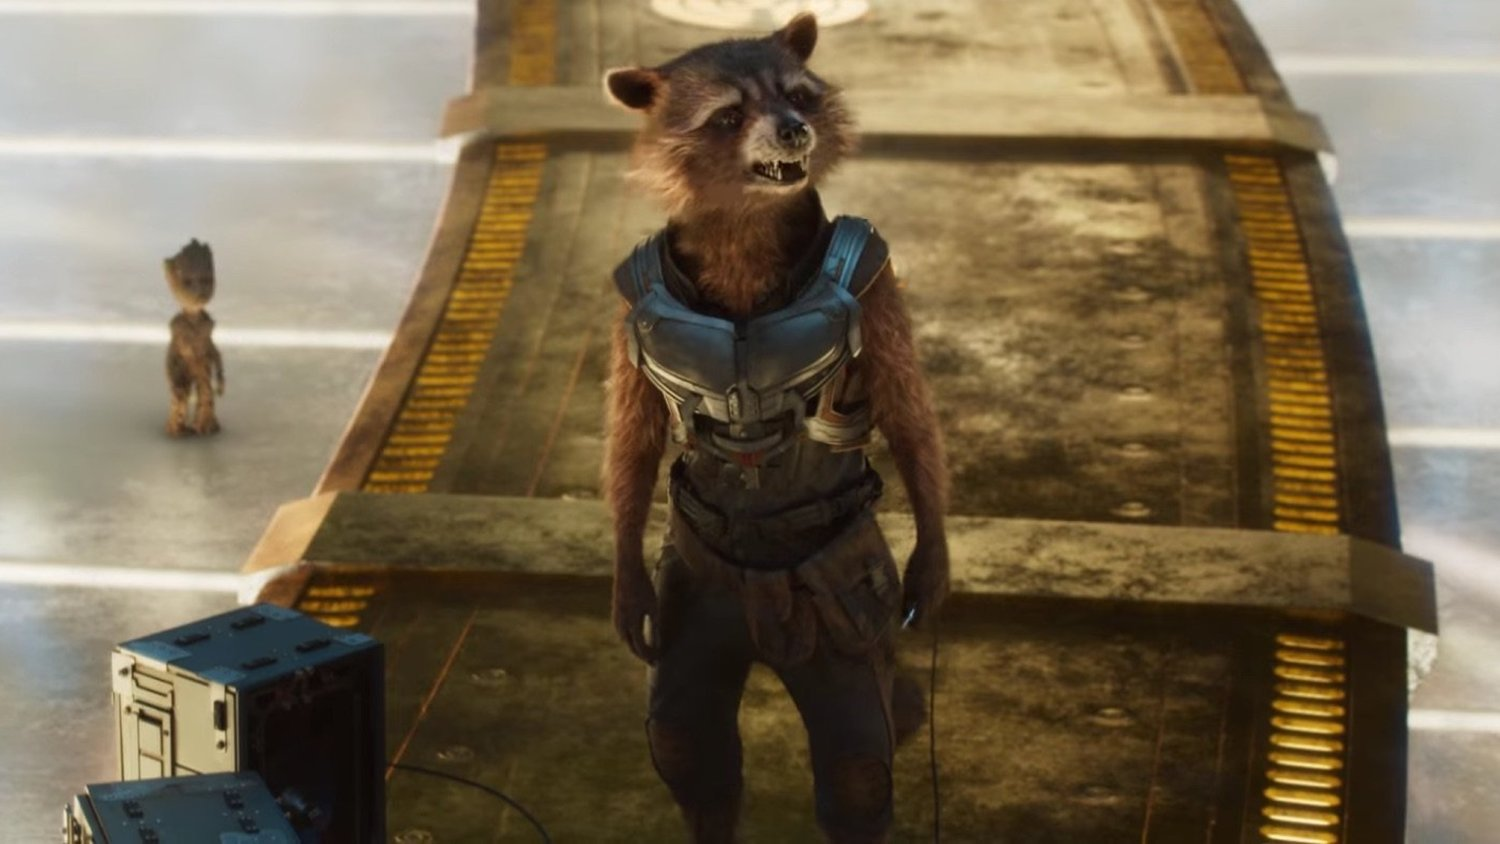 Turds Are a Major Topic of Conversation in Hilarious New Spot for GUARDIANS OF THE GALAXY VOL. 2